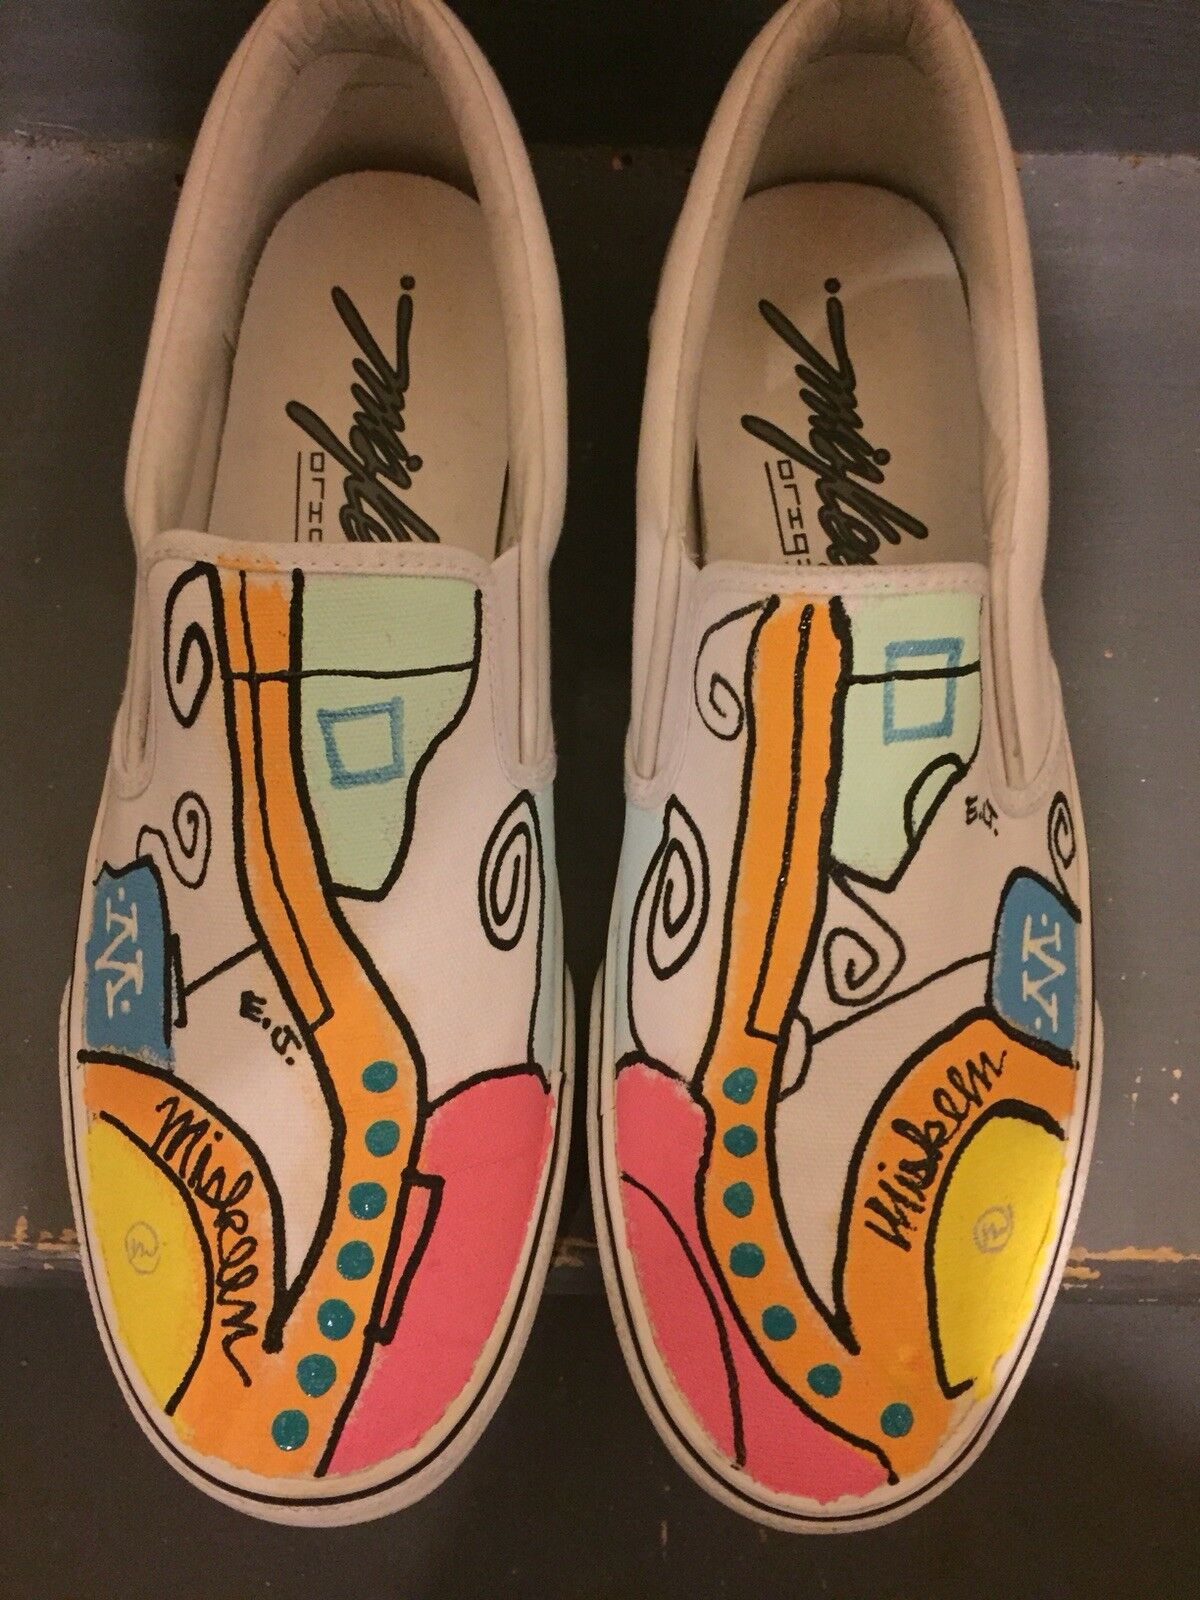 Miskeen Original Hand Painted Slip On shoes - RARE Number 3 of 10